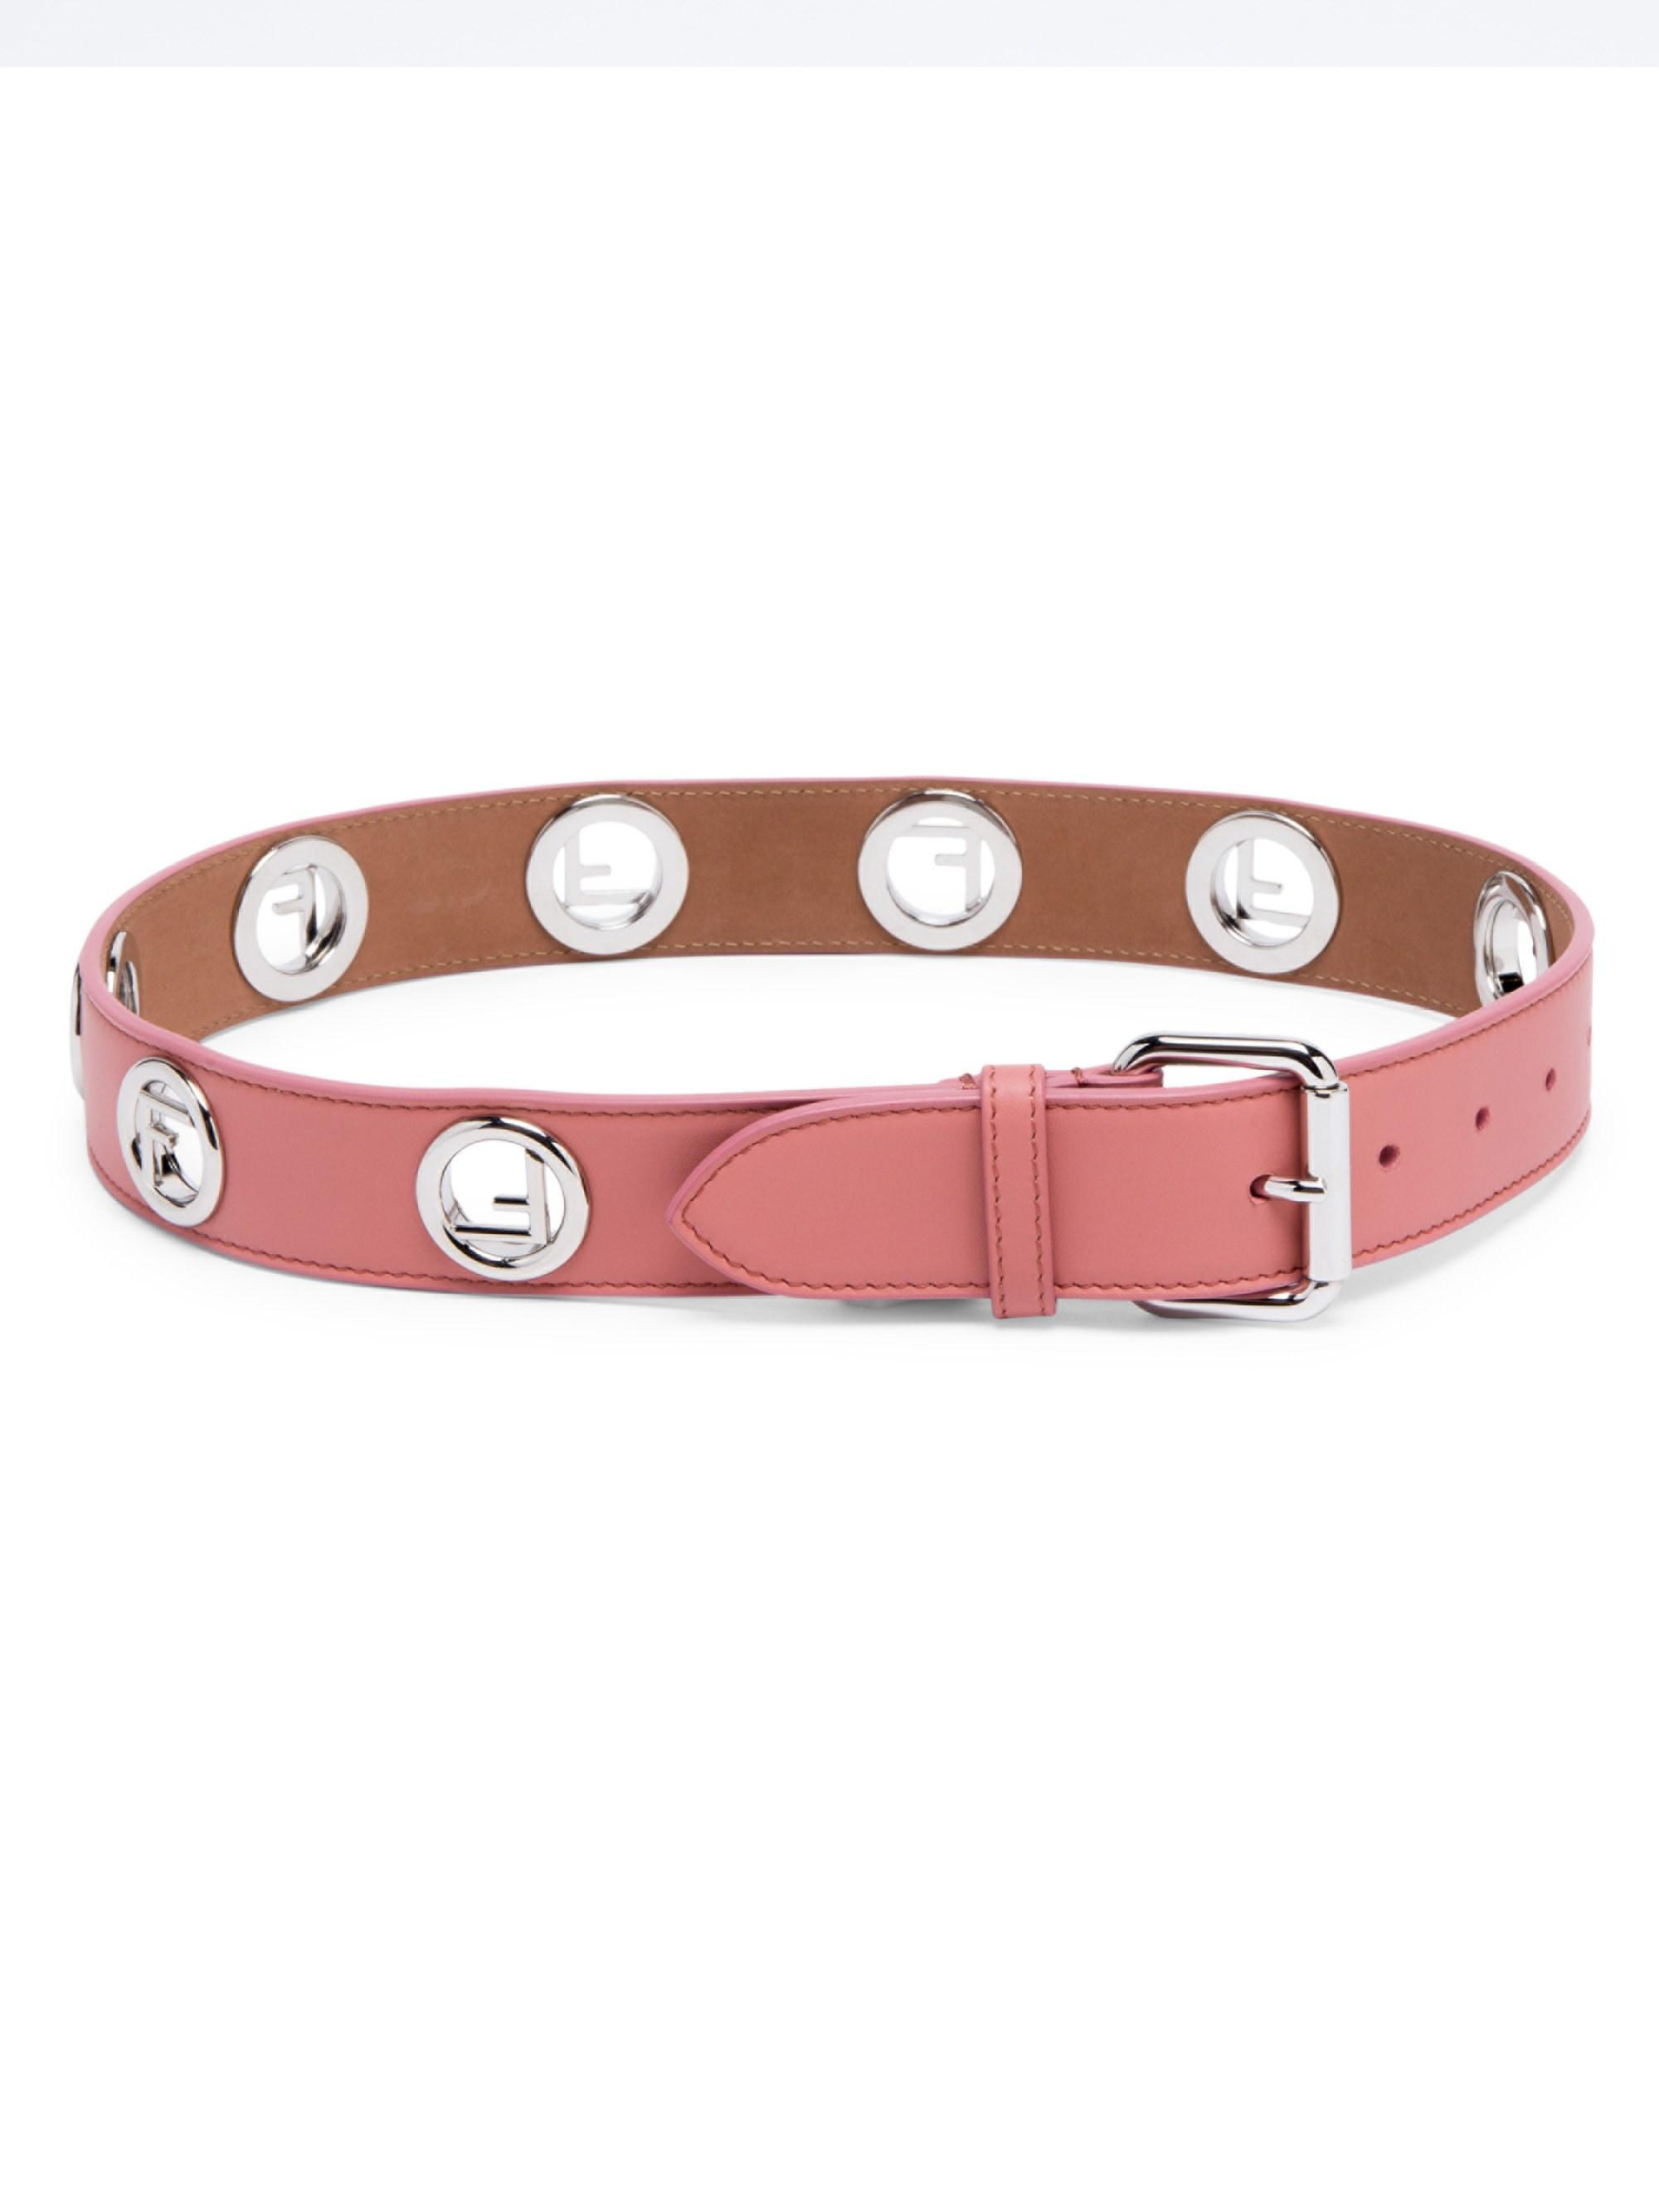 Fendi Women s Silvertone Logo Leather Belt - Pink - Size Large (36 ... afad1e7e068b